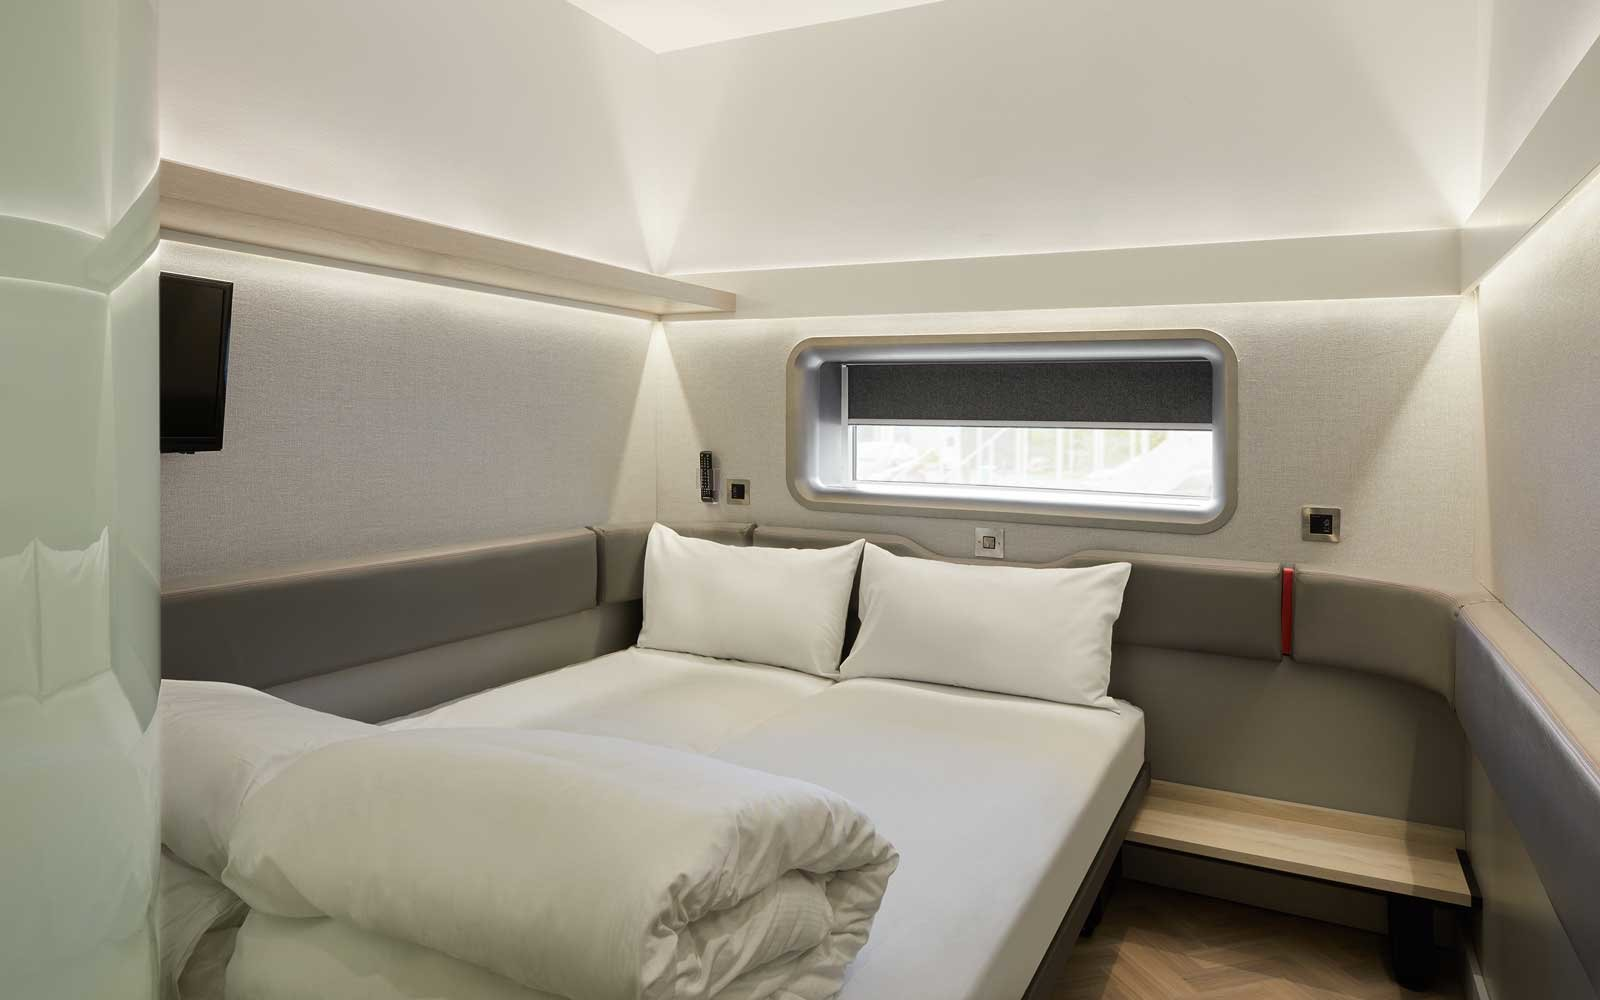 Tiny Hotel Rooms Class Airplane